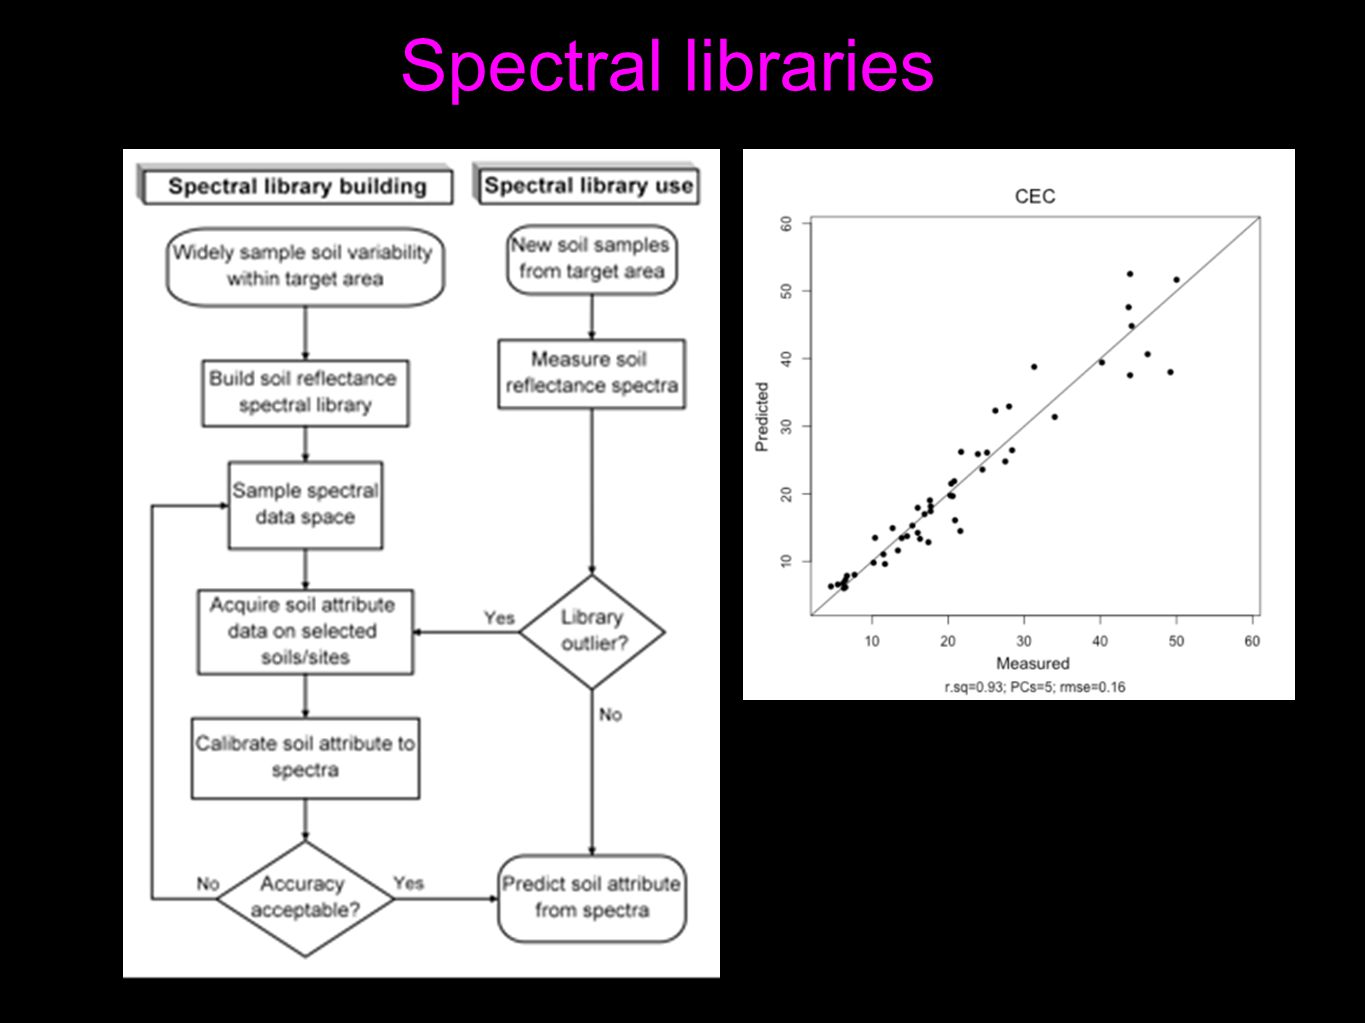 Spectral libraries